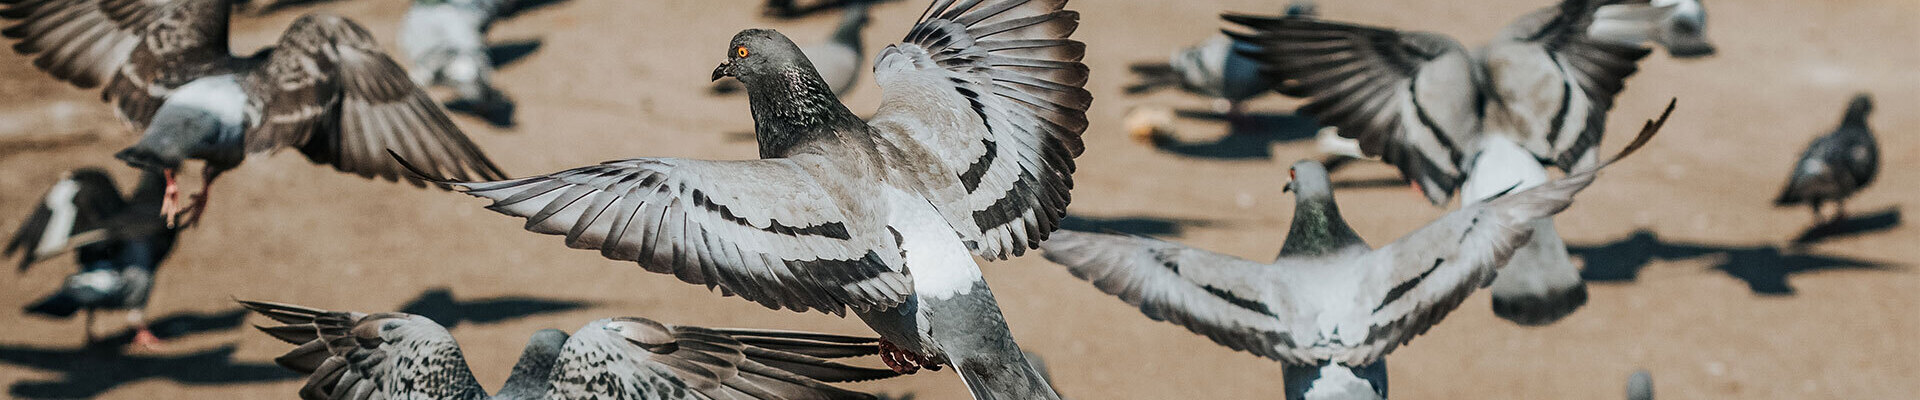 Pigeon control in Reading and throughout Berkshire